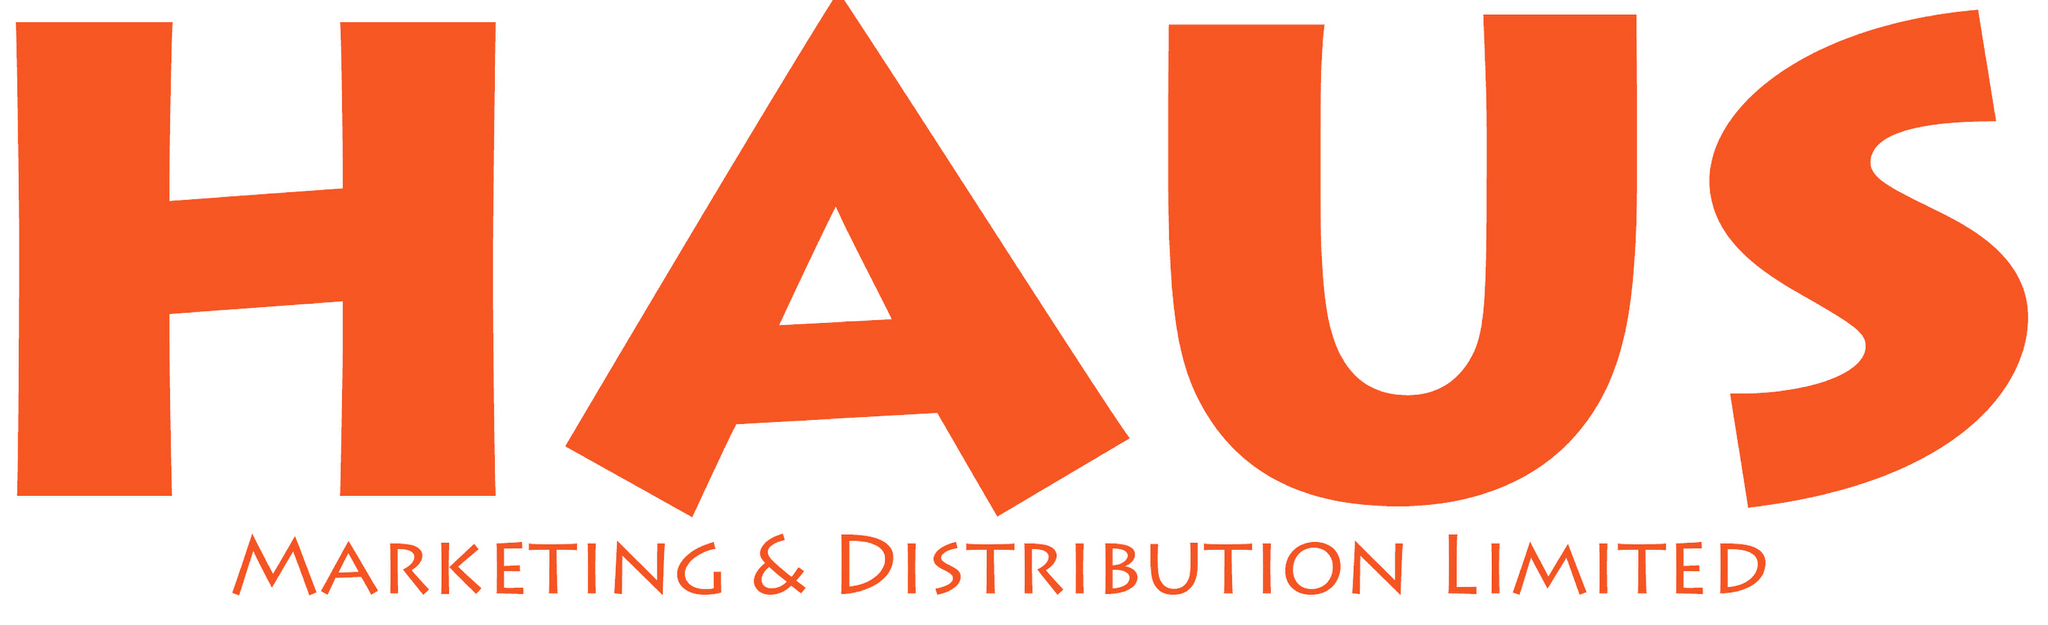 Haus Marketing and Distribution